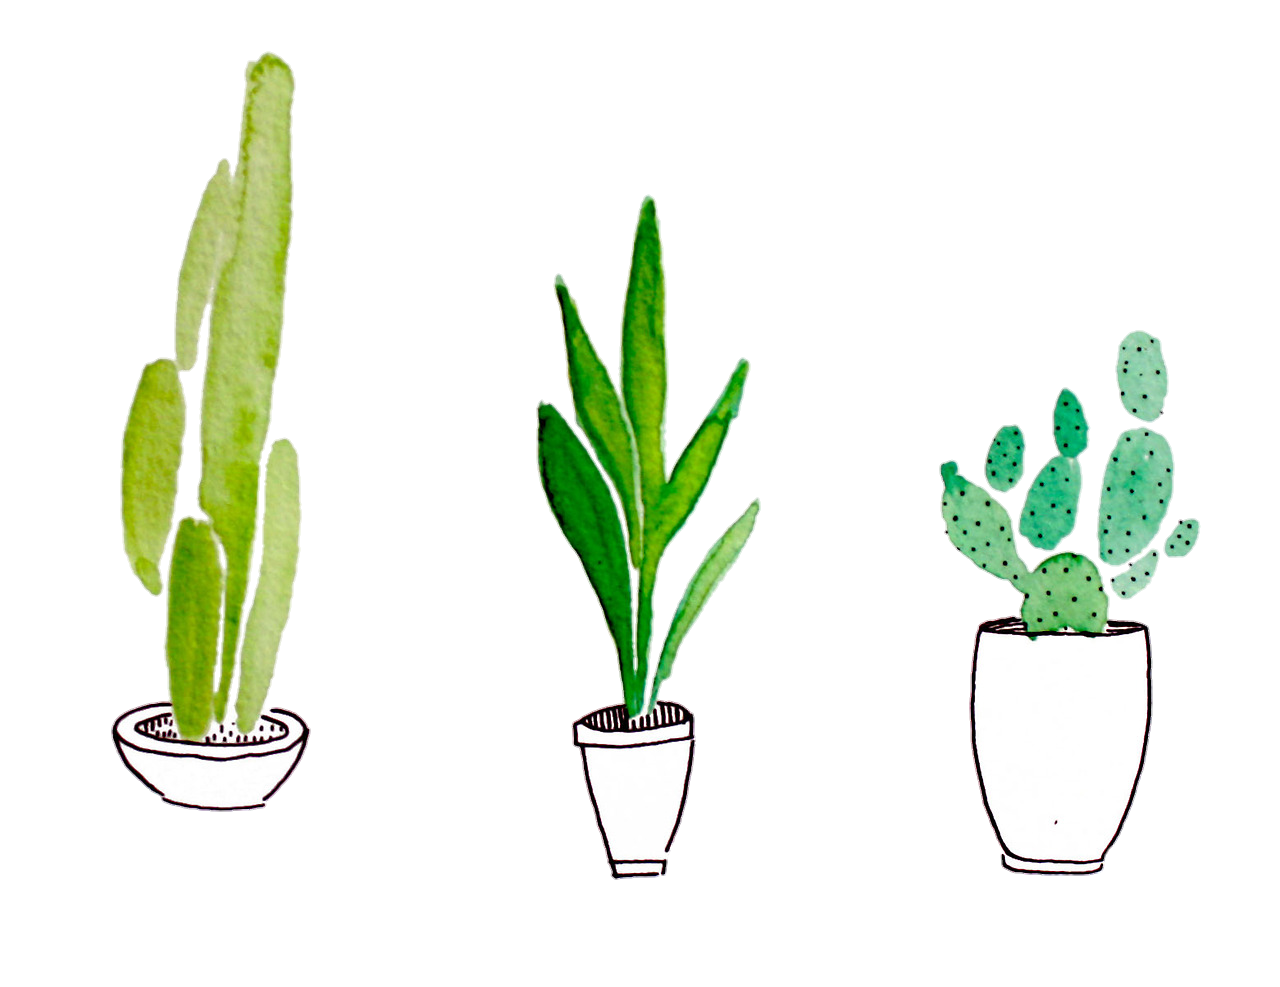 Green Drawing Cactus Transparent & PNG Clipart Free Download - YA